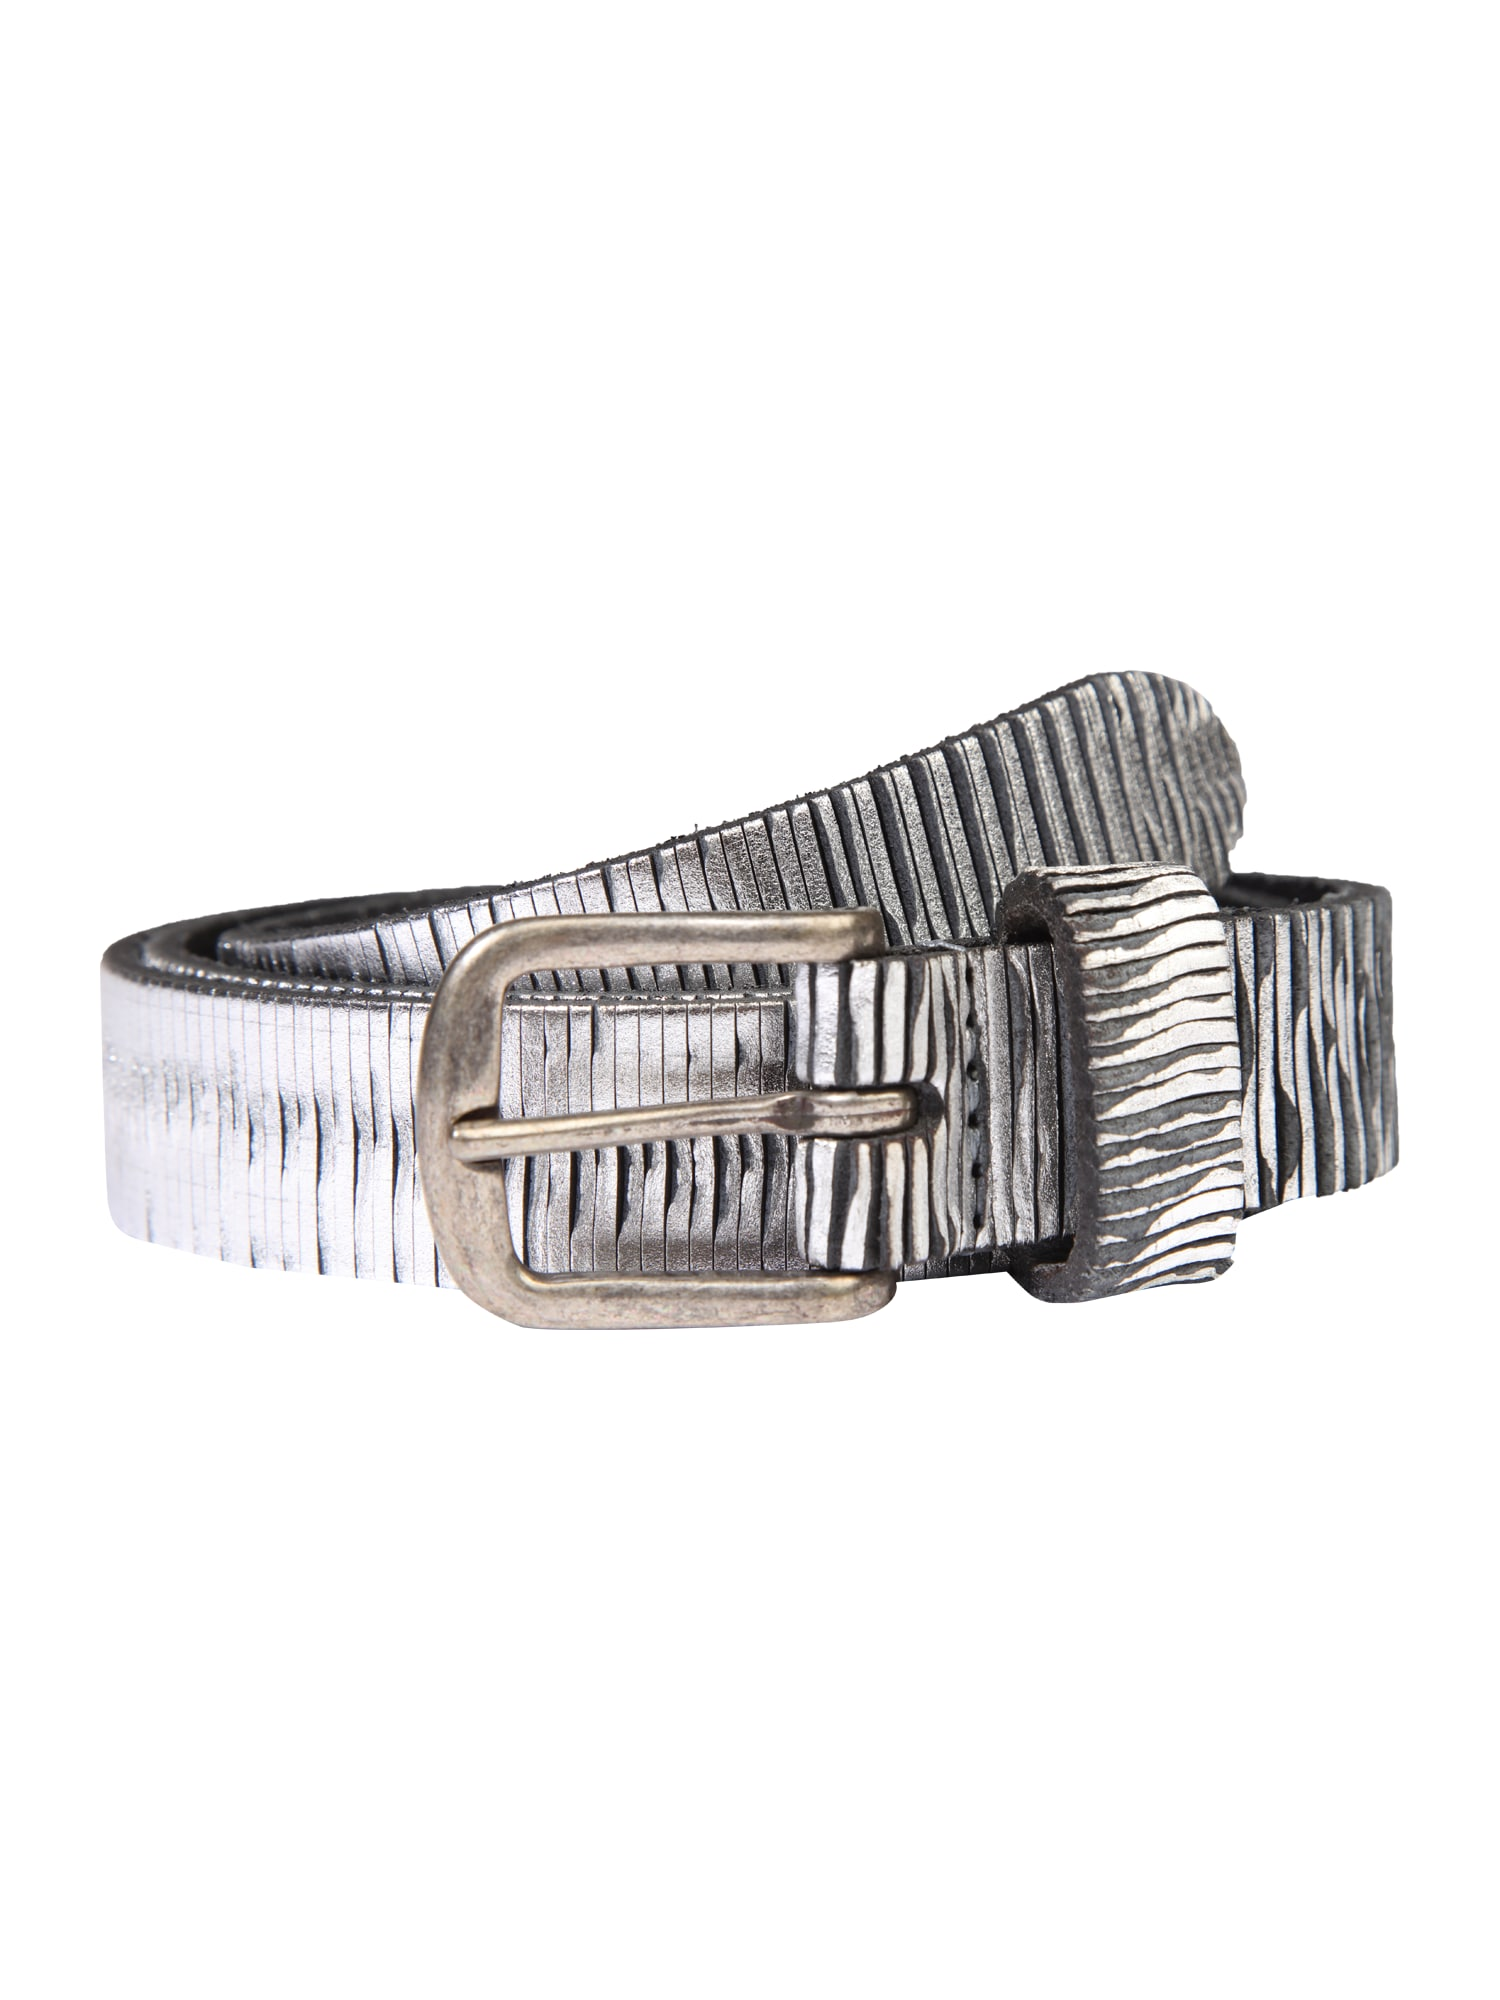 LEGEND, Dames Riem 'Cut', zilver